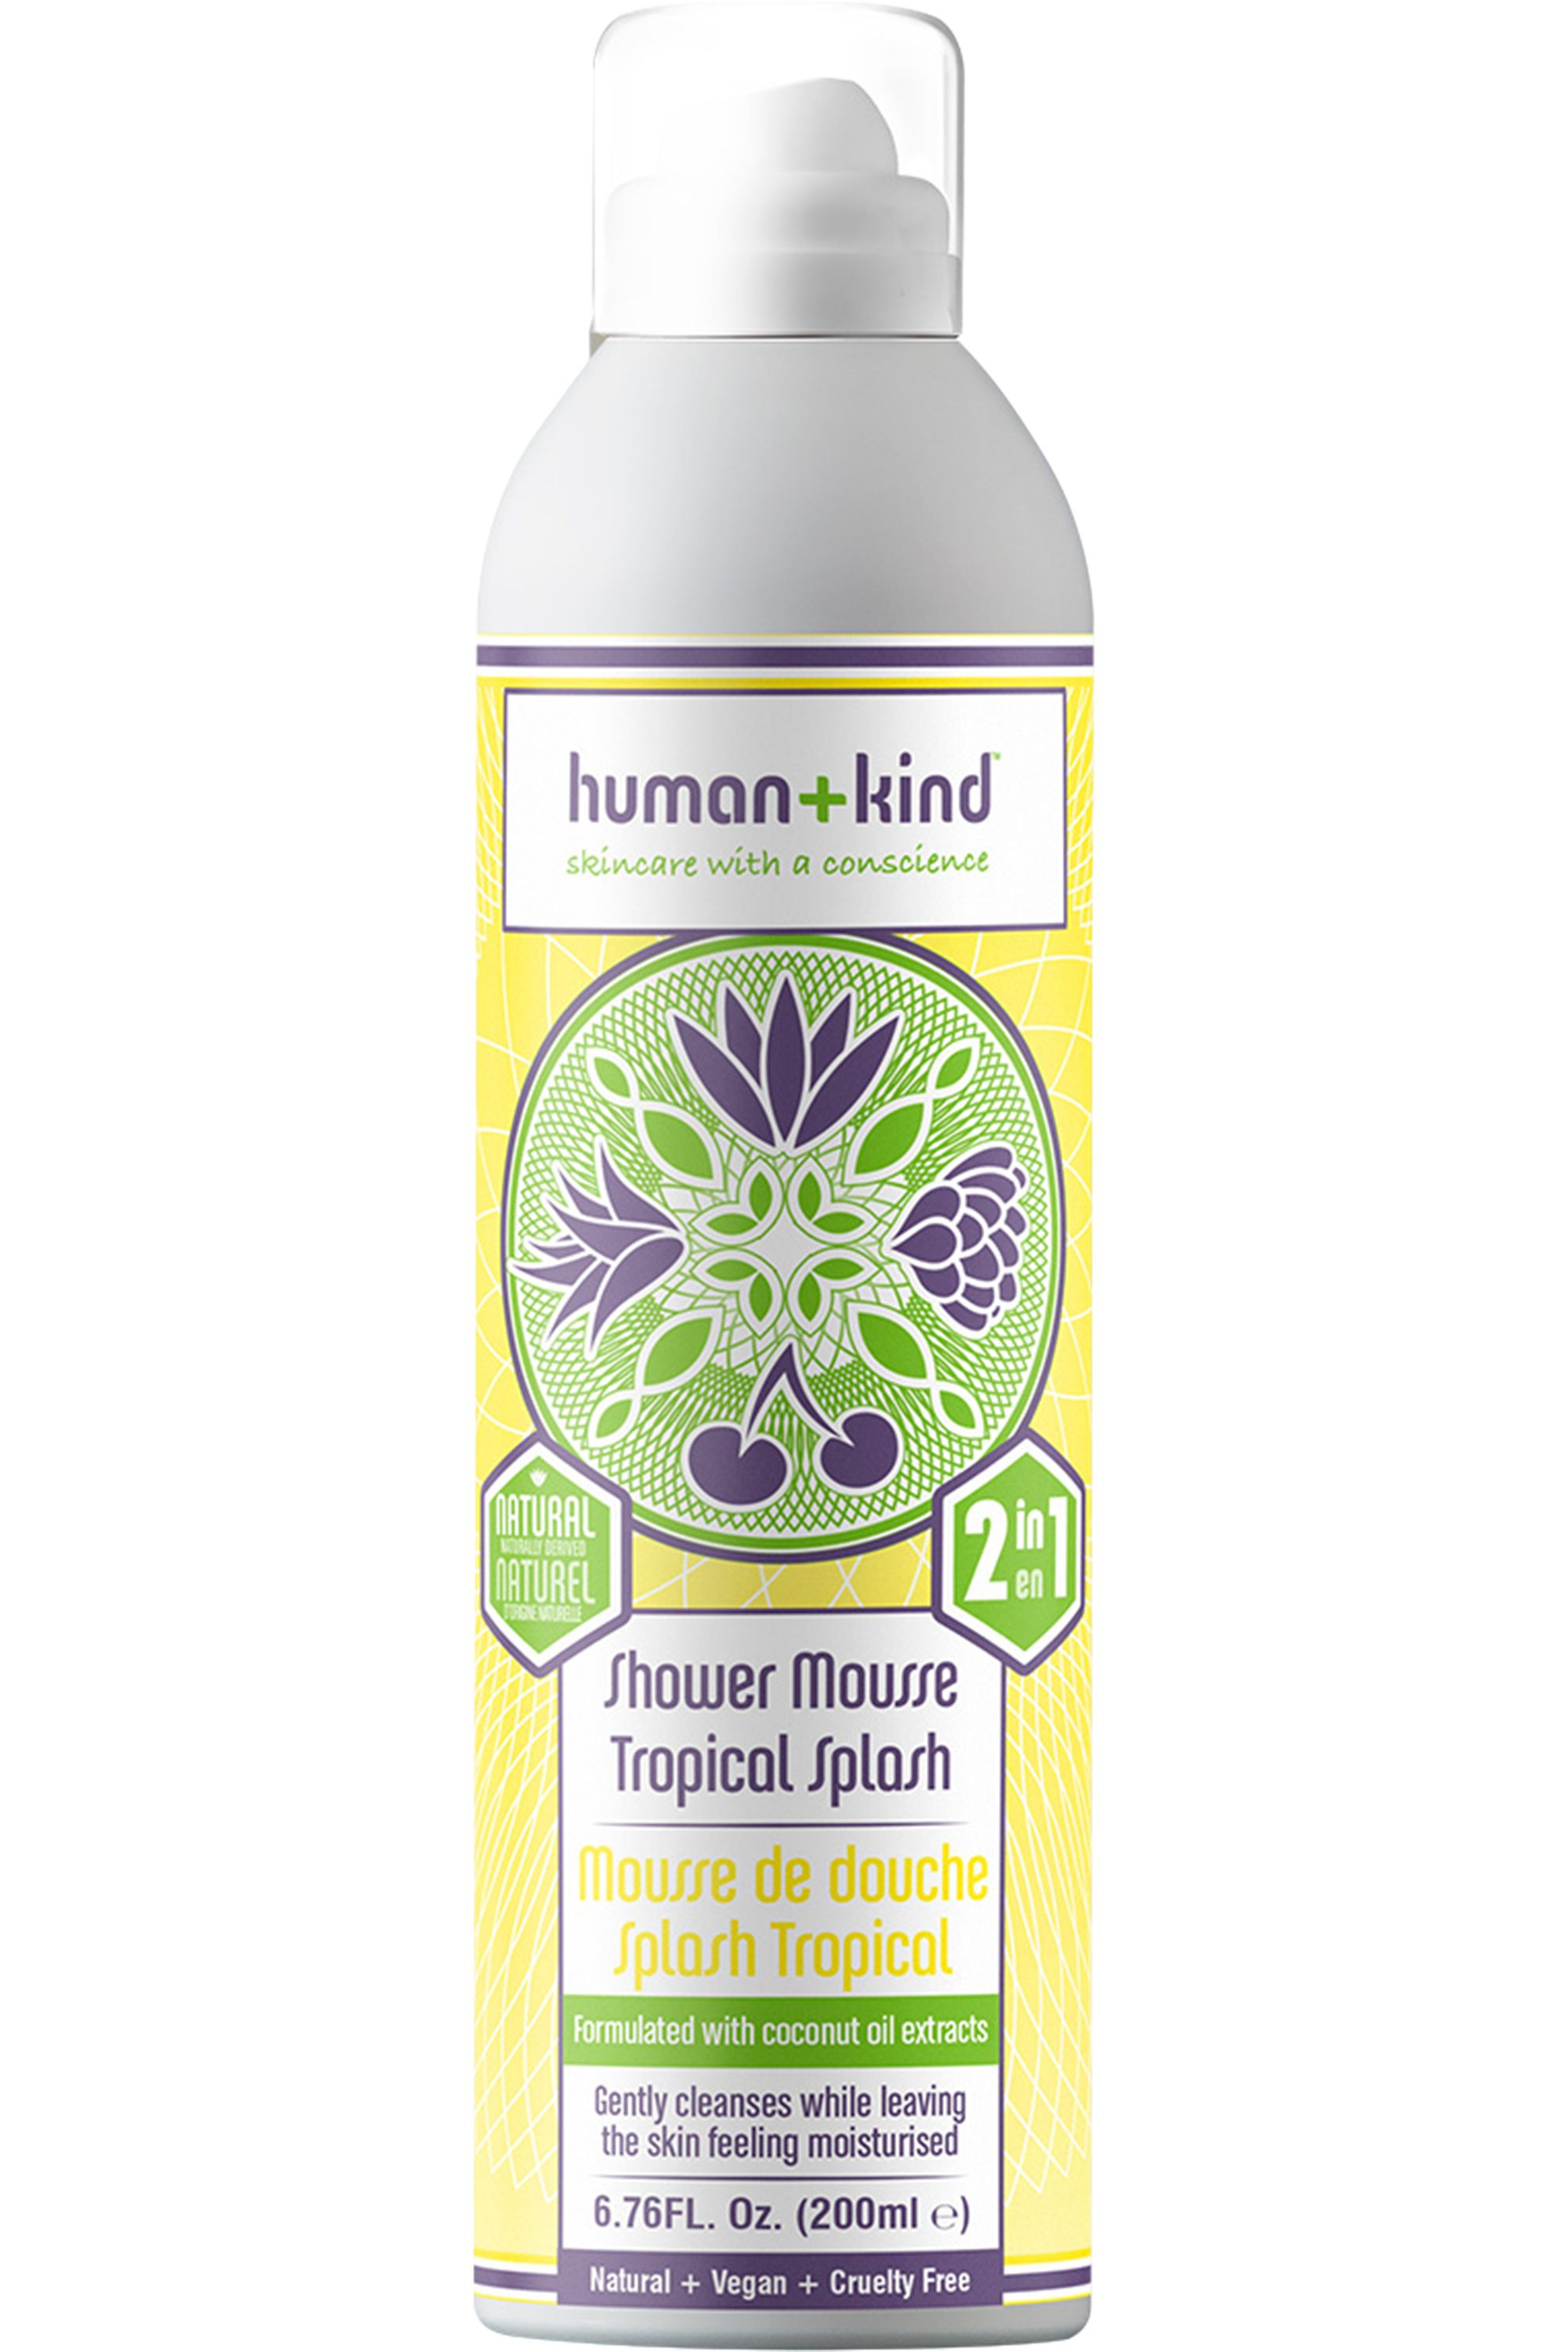 Blissim : Human + Kind - Mousse de douche Tropical Splash - Mousse de douche Tropical Splash